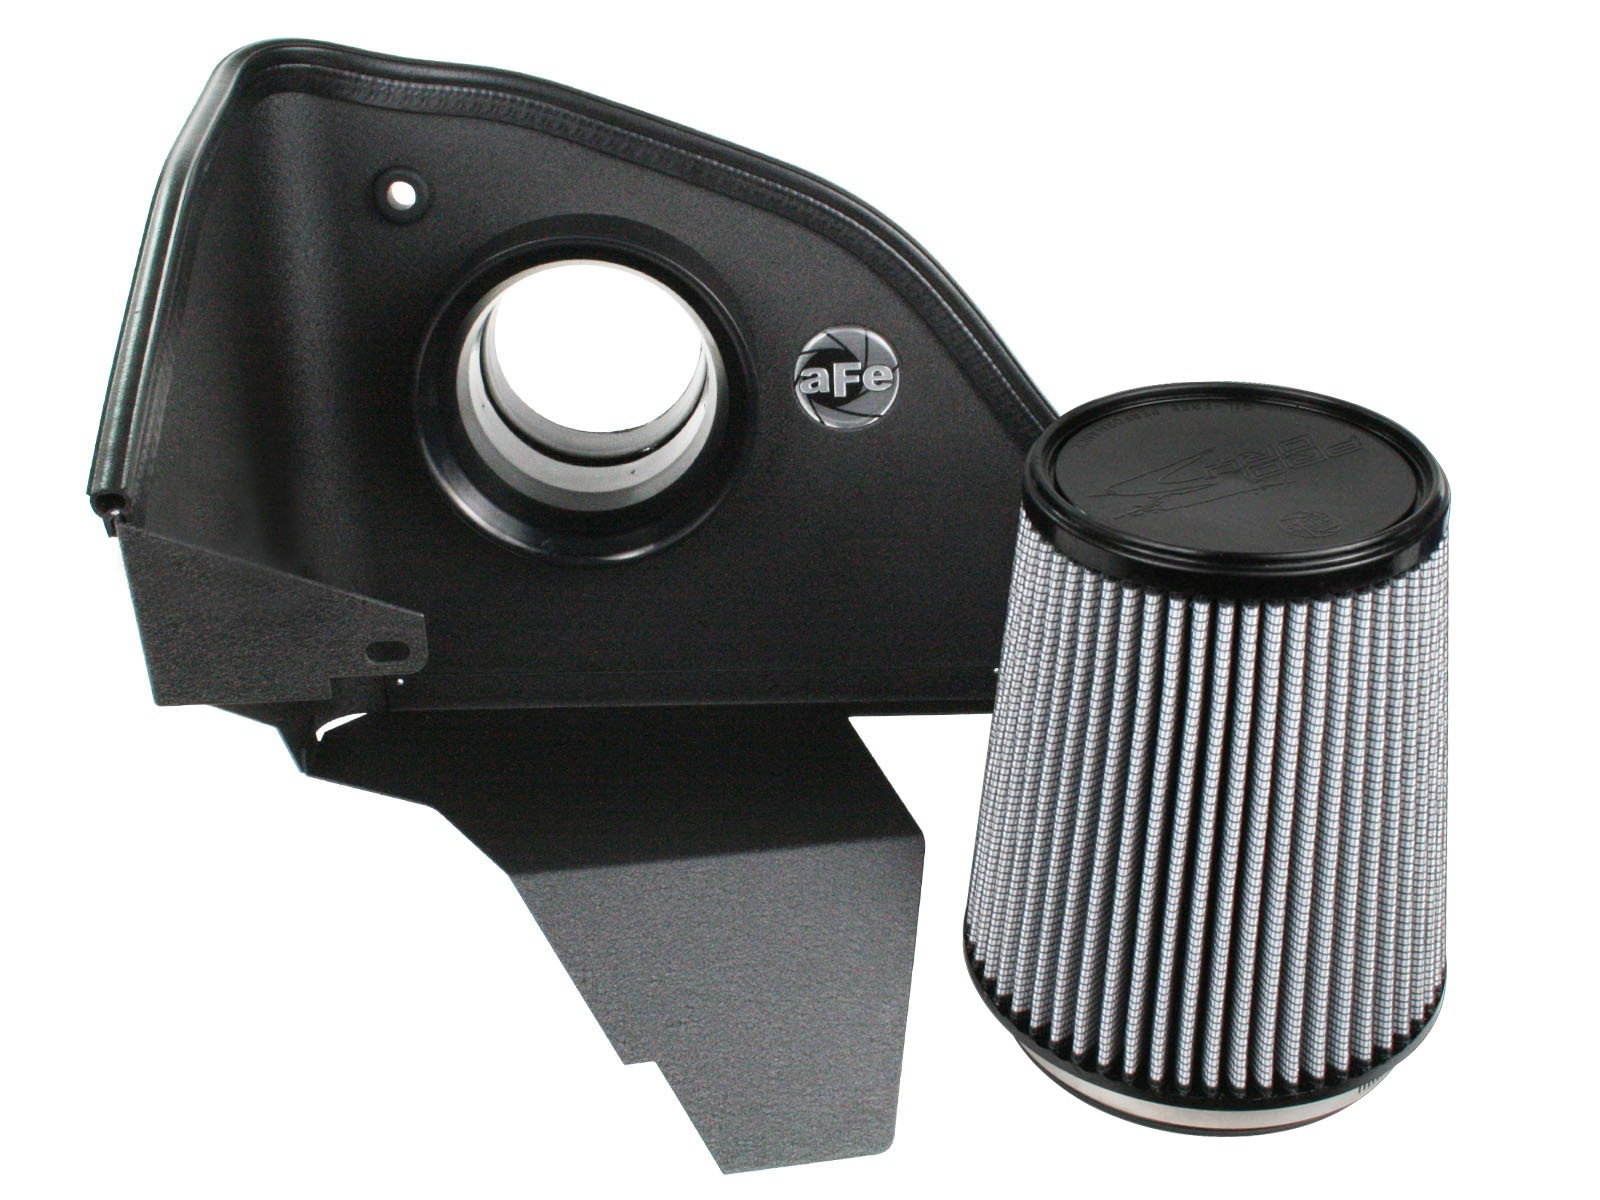 aFe POWER 51-10471 Magnum FORCE Stage-1 Pro DRY S Cold Air Intake System